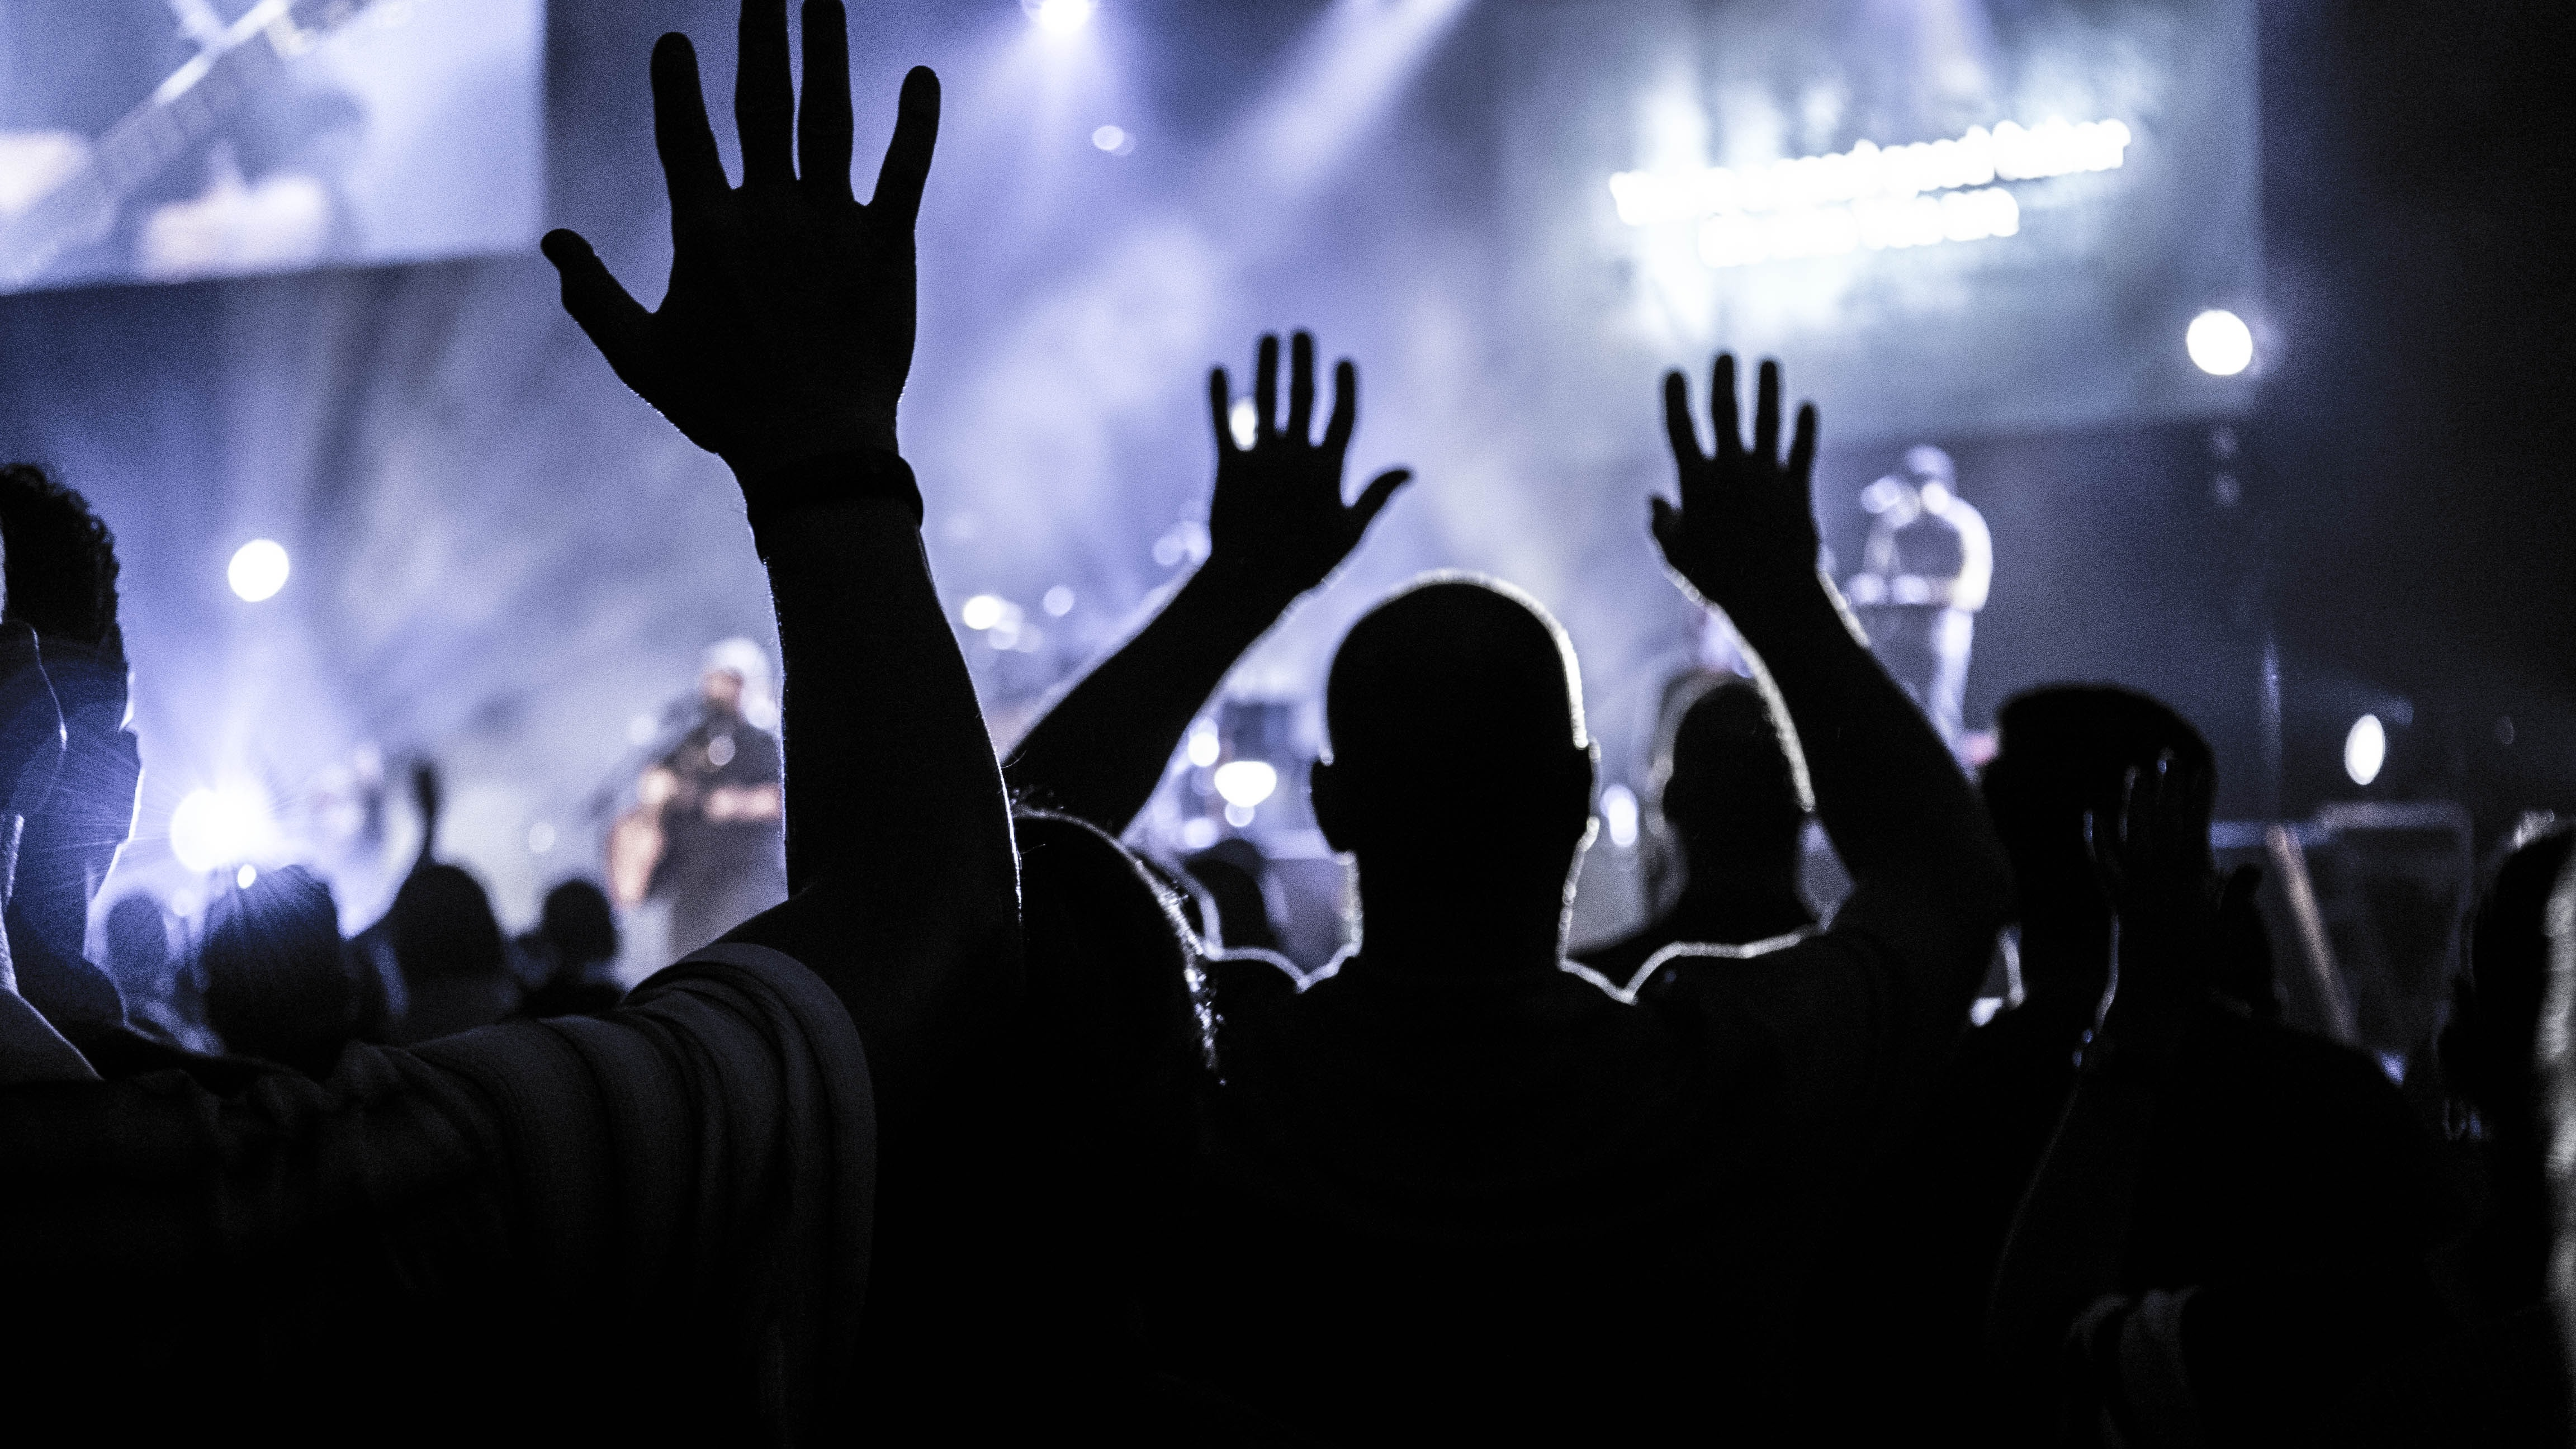 Concertgoers raising their open hands in the air silhouetted against the illuminated stage in Houston